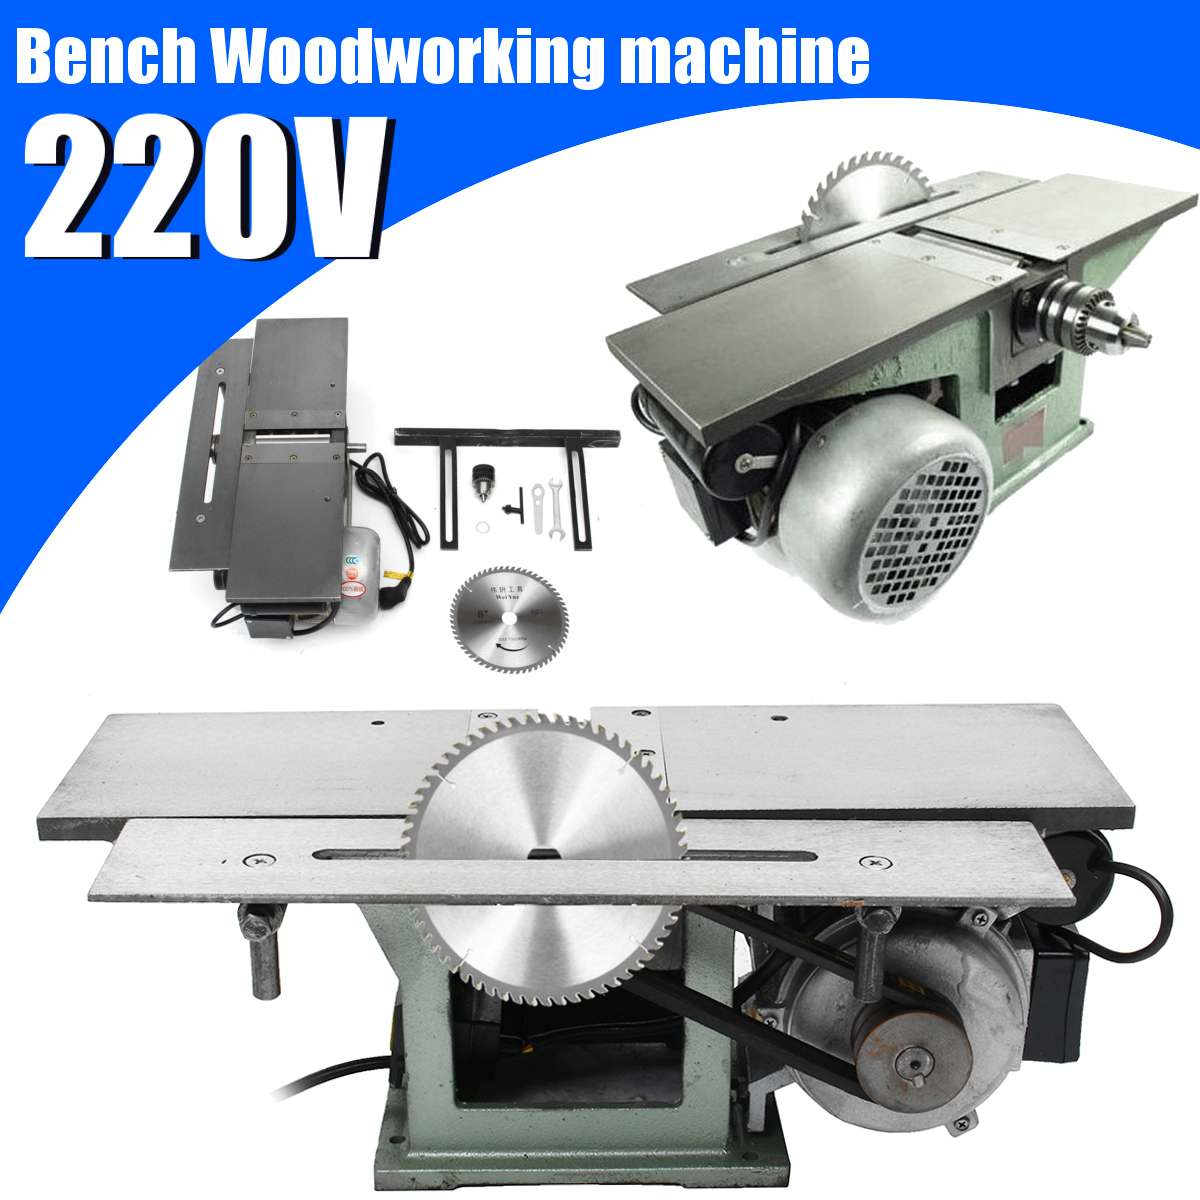 3 In 1 220V  Woodworking Machine Electric Planing Planer Multifunctional Wood Work Table Planing Saw Drill Body Cutting Machine